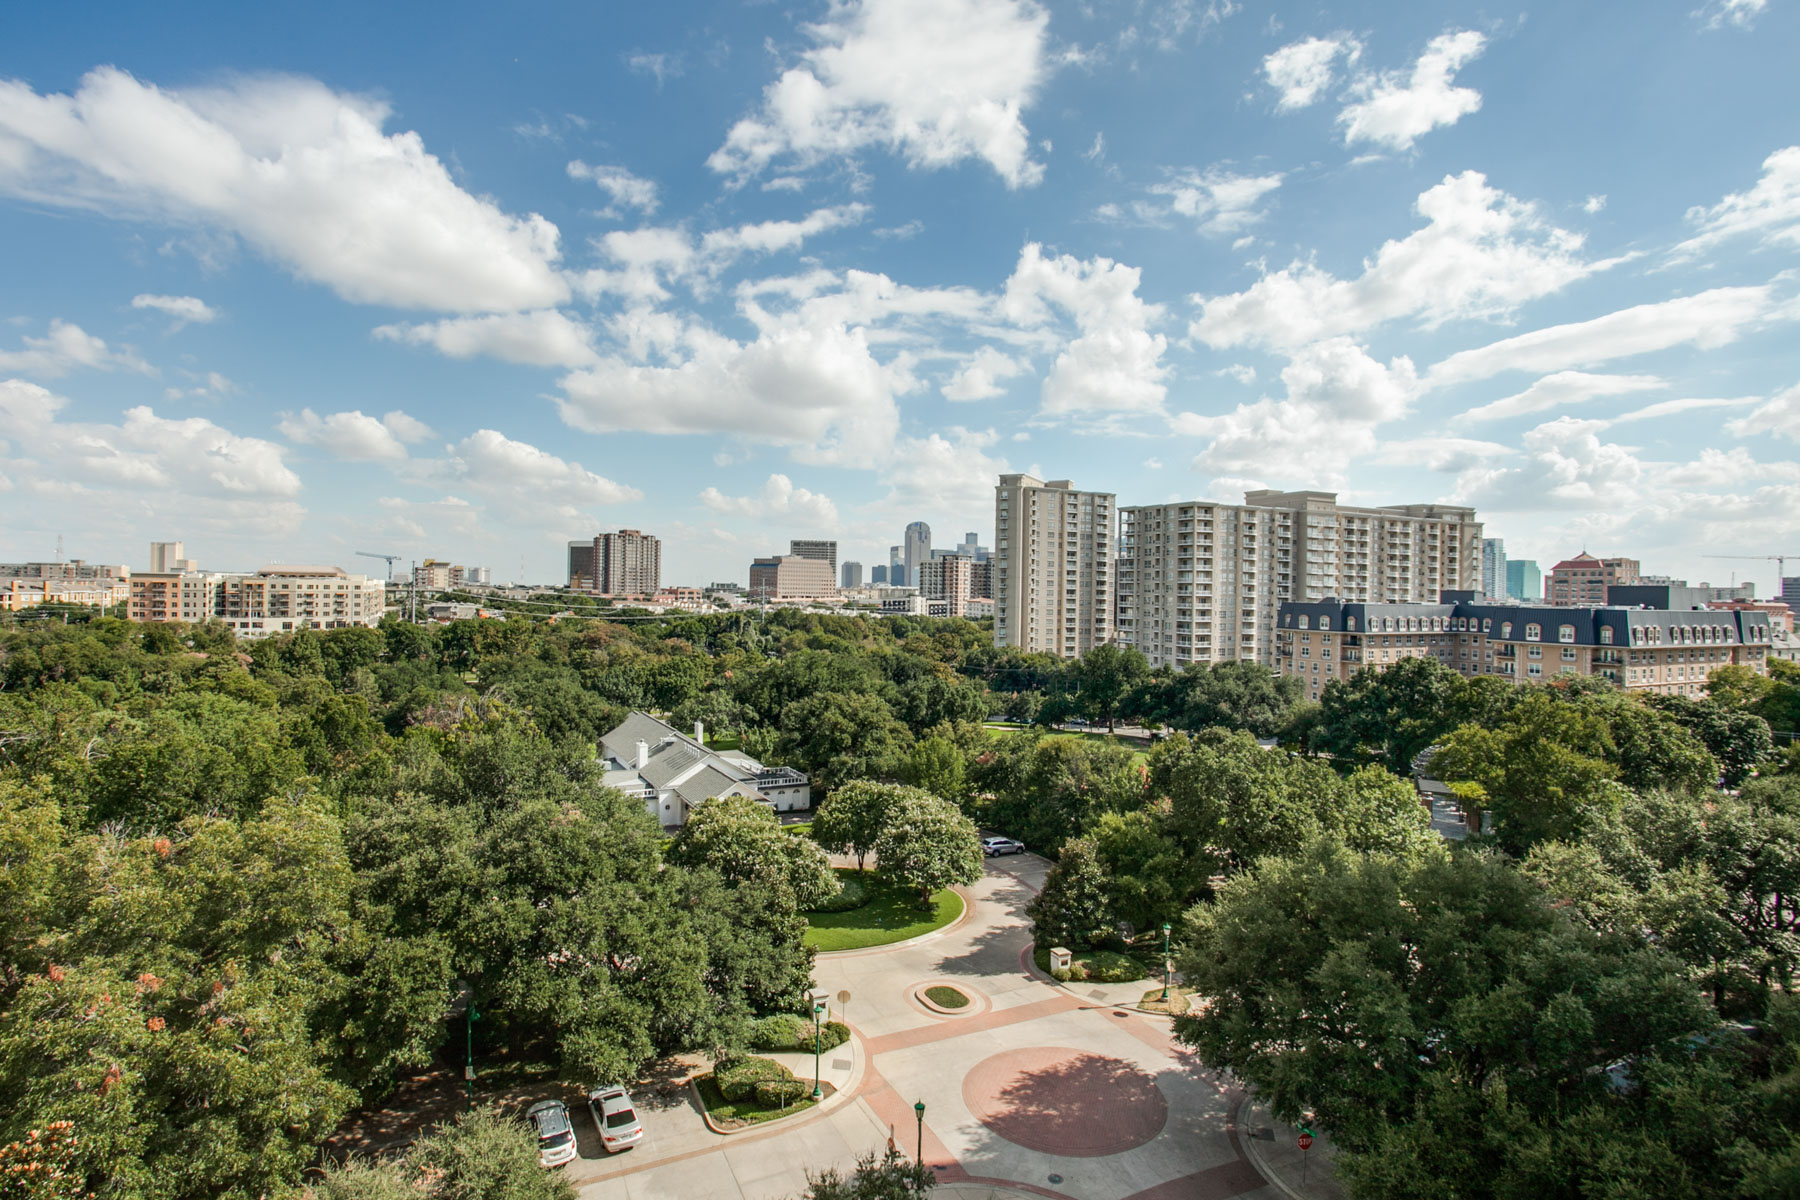 Condominium for Sale at Mayfair Magnificence 3401 Lee Parkway #804 Dallas, Texas 75219 United States